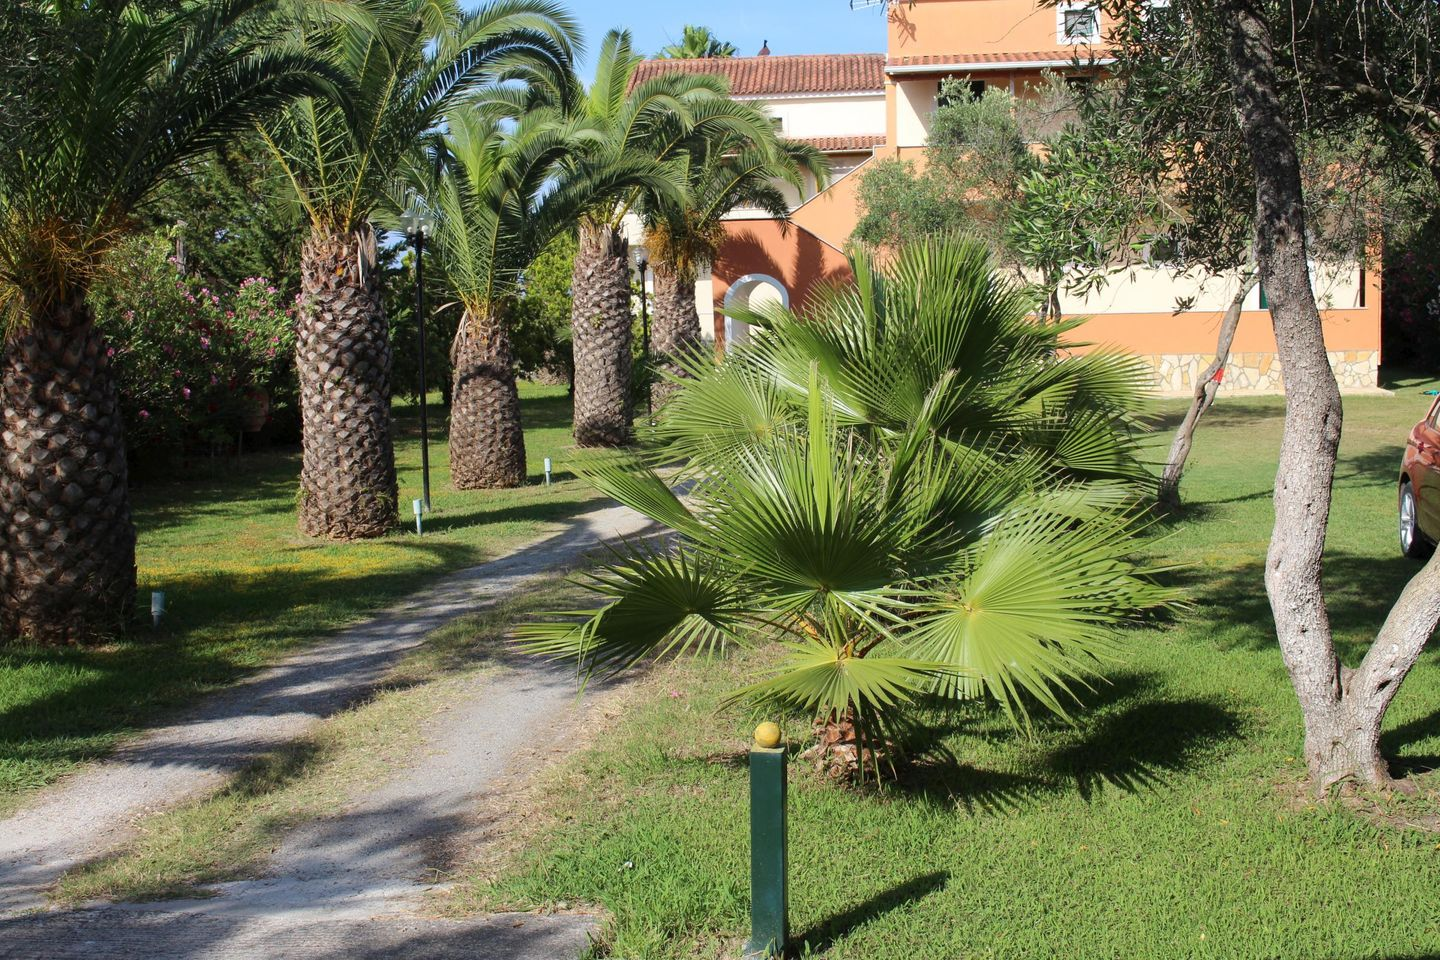 Holiday apartment IRINI (499955), Aghios Petros, Corfu, Ionian Islands, Greece, picture 12